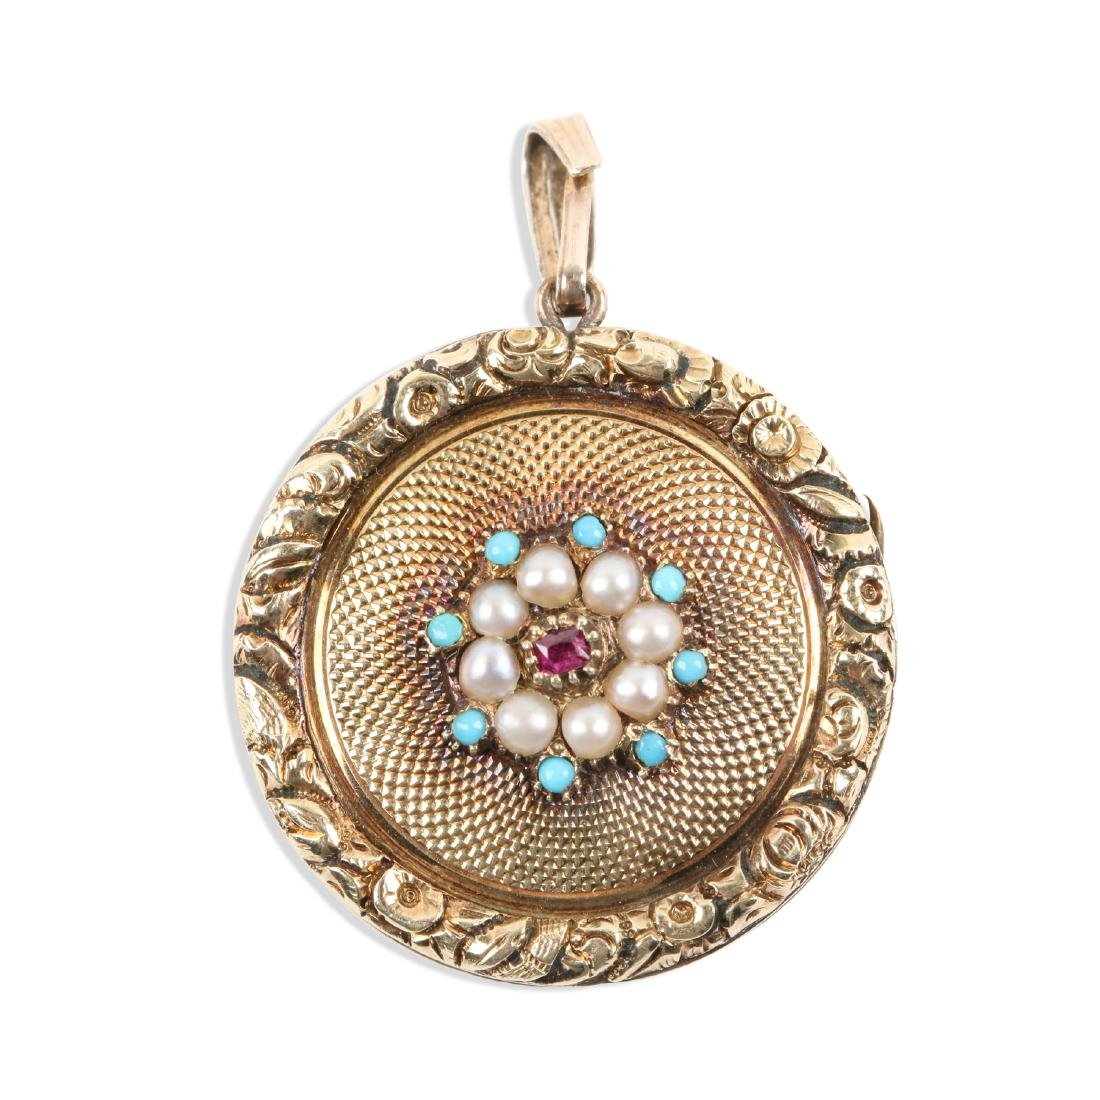 A Georgian 18K Gold, Pearl, Ruby & Turquoise